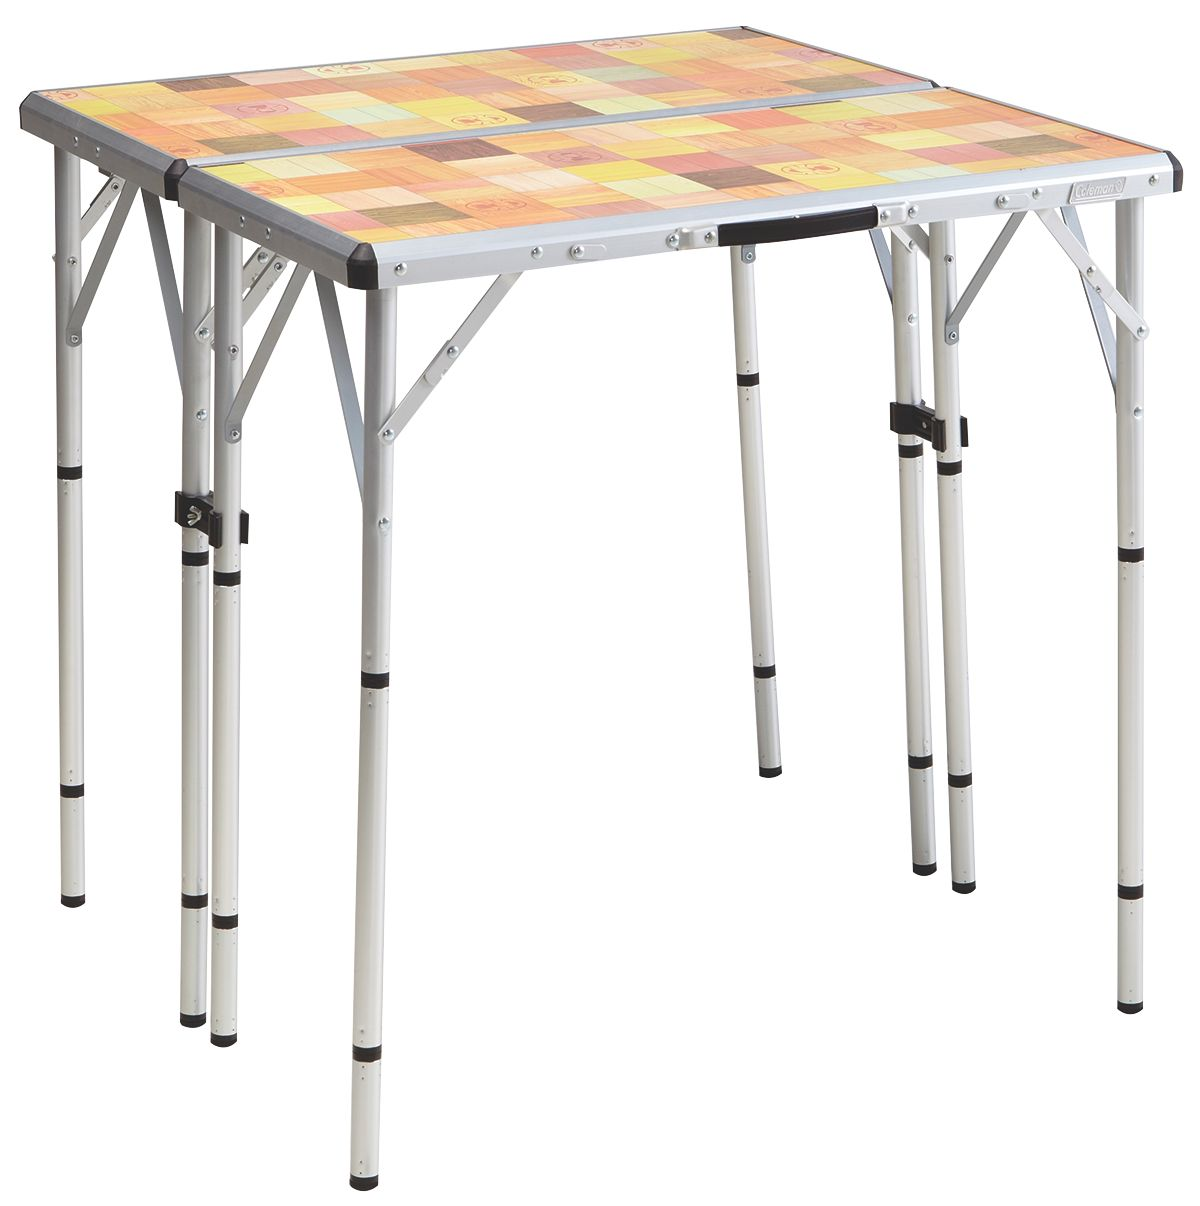 Pack Away® 4 In 1 Table